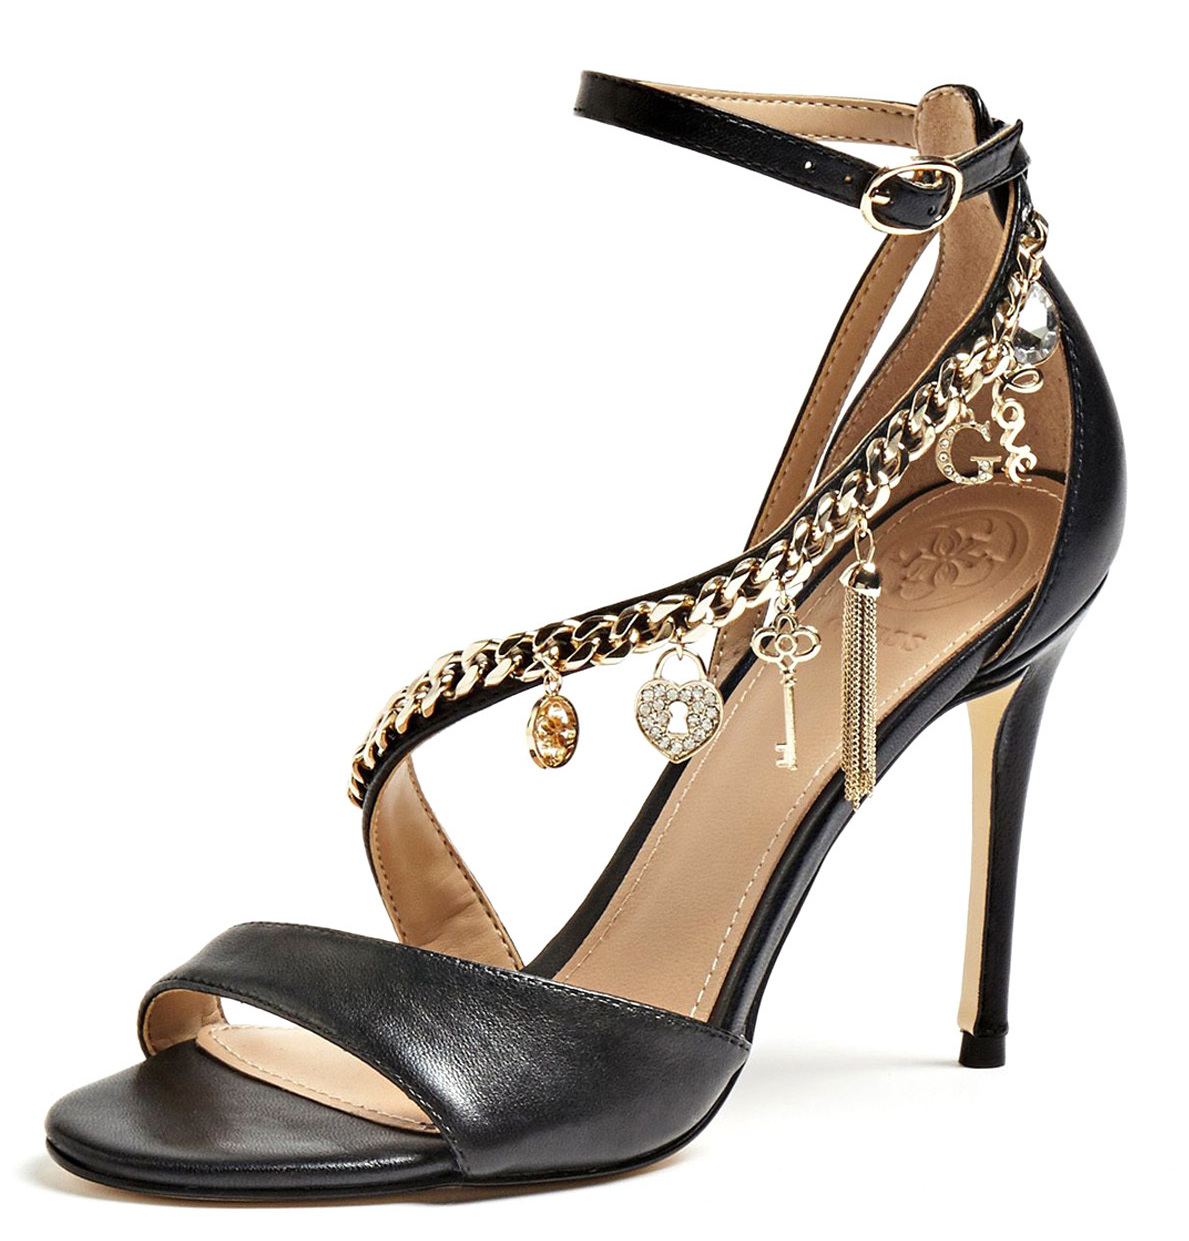 GUESS BLACK KAYAK ANKLE STRAP HEEL SANDALS